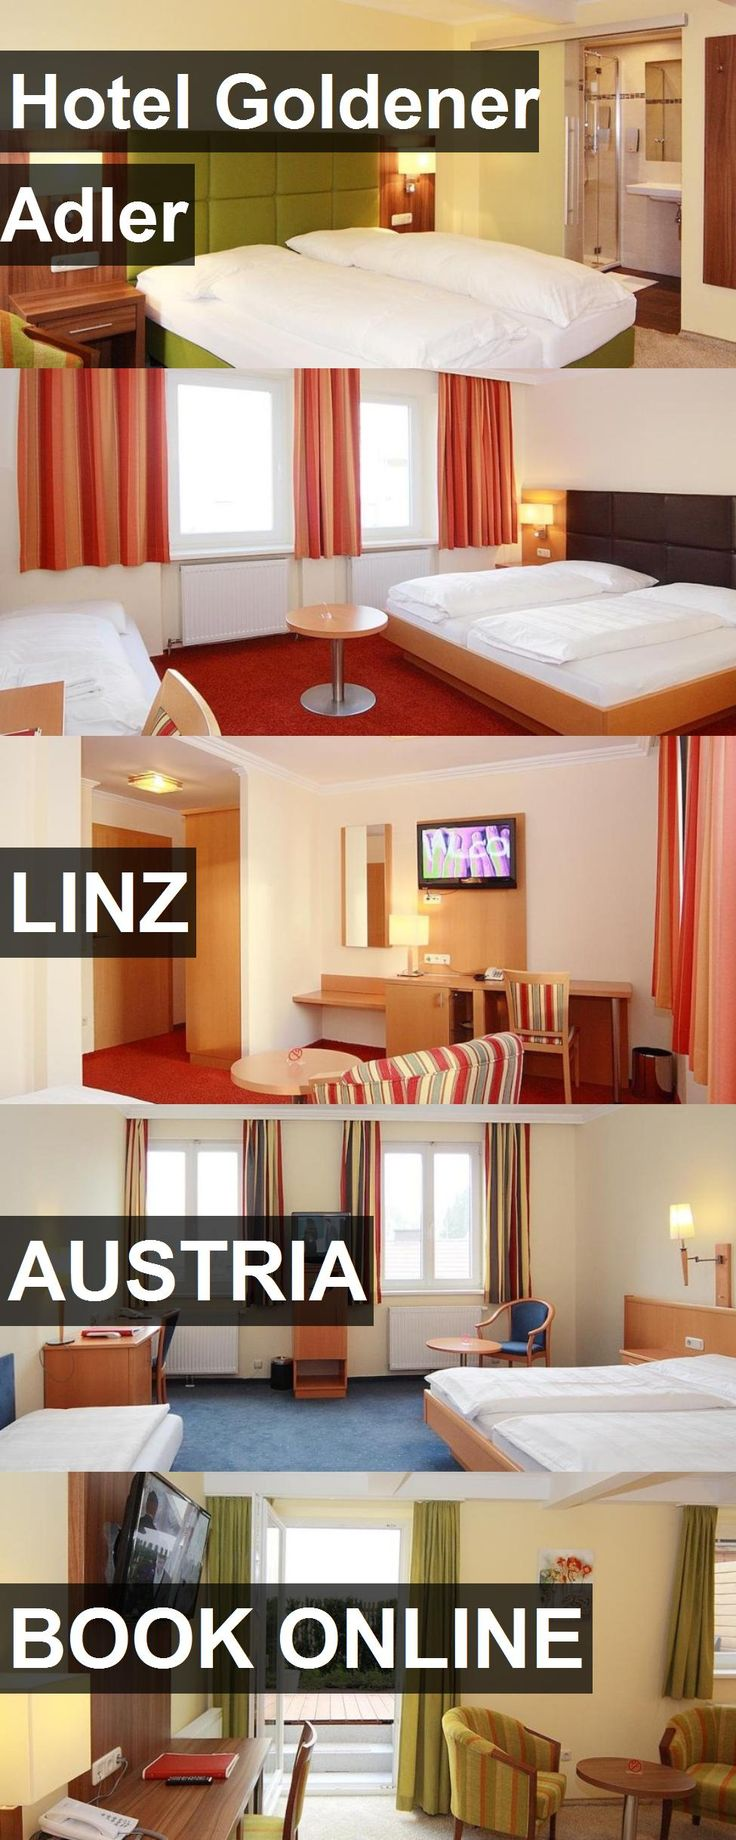 Hotel Goldener Adler in Linz, Austria. For more information, photos, reviews and best prices please follow the link. #Austria #Linz #travel #vacation #hotel